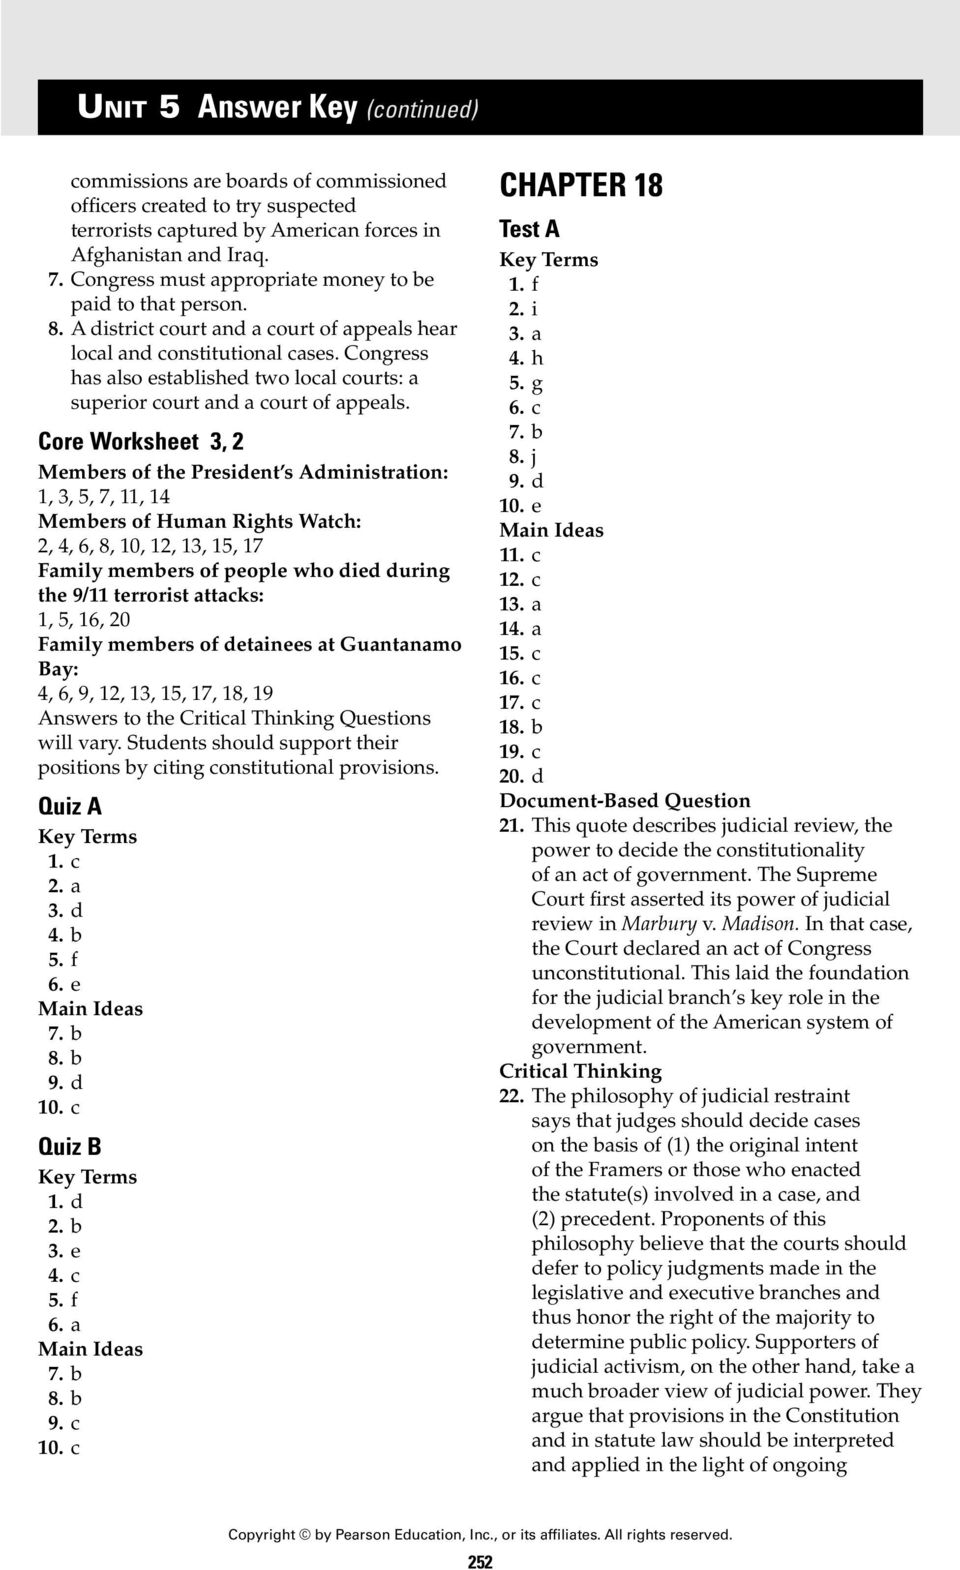 Worksheets Judicial Branch Worksheet unit 5 answer key chapter 18 section 1 pdf core worksheet 3 2 members of the president s administration 3